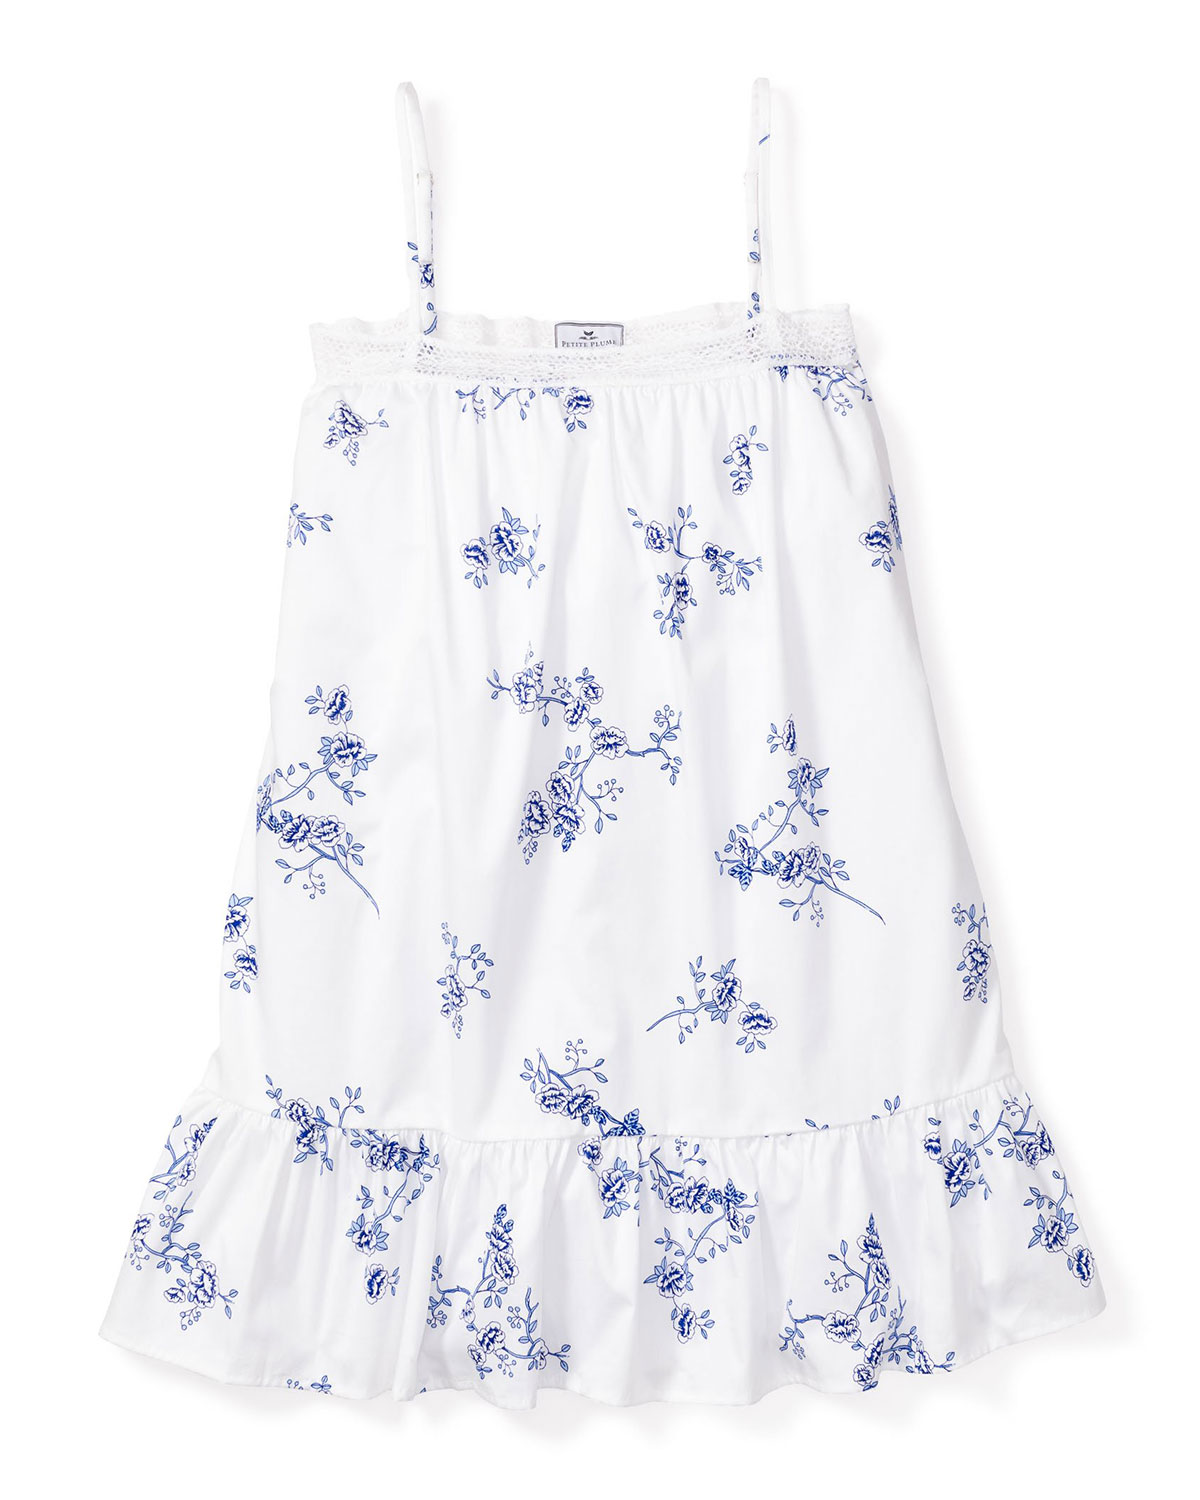 Petite Plume Nightgowns KID'S LILY FLORAL-PRINT LACE NIGHT GOWN